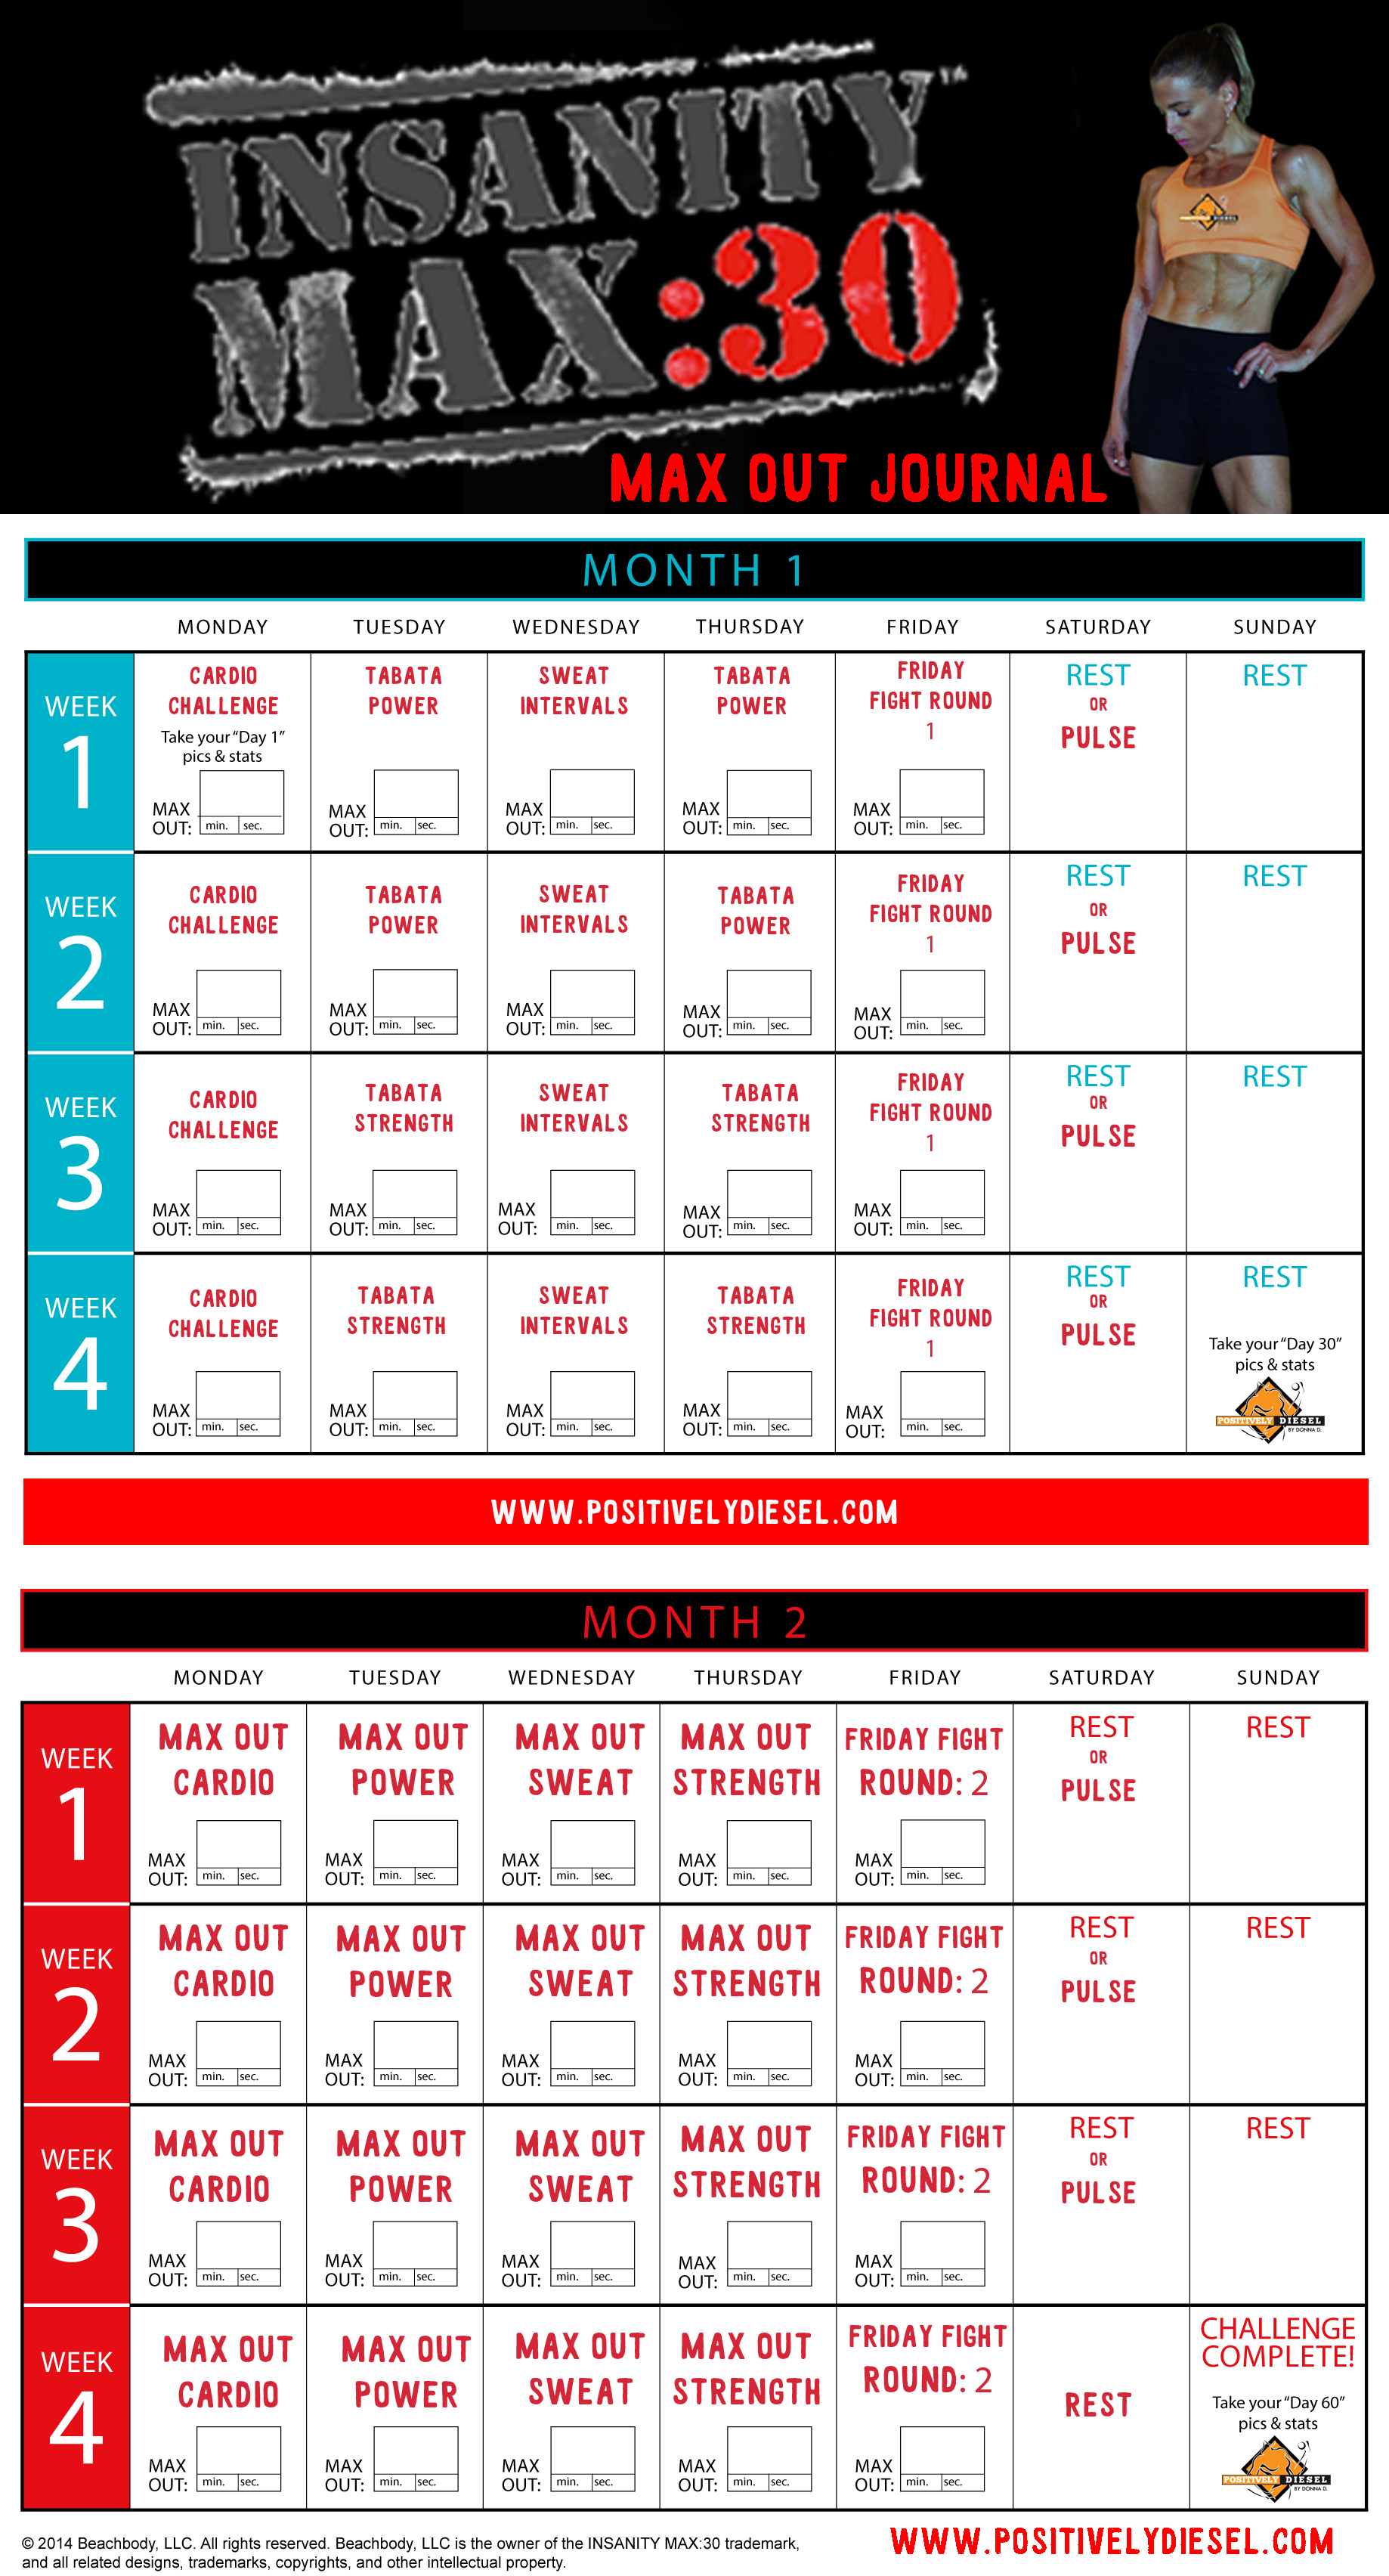 insanity workout 30 max : Workout : Menu0026#39;s Fitness